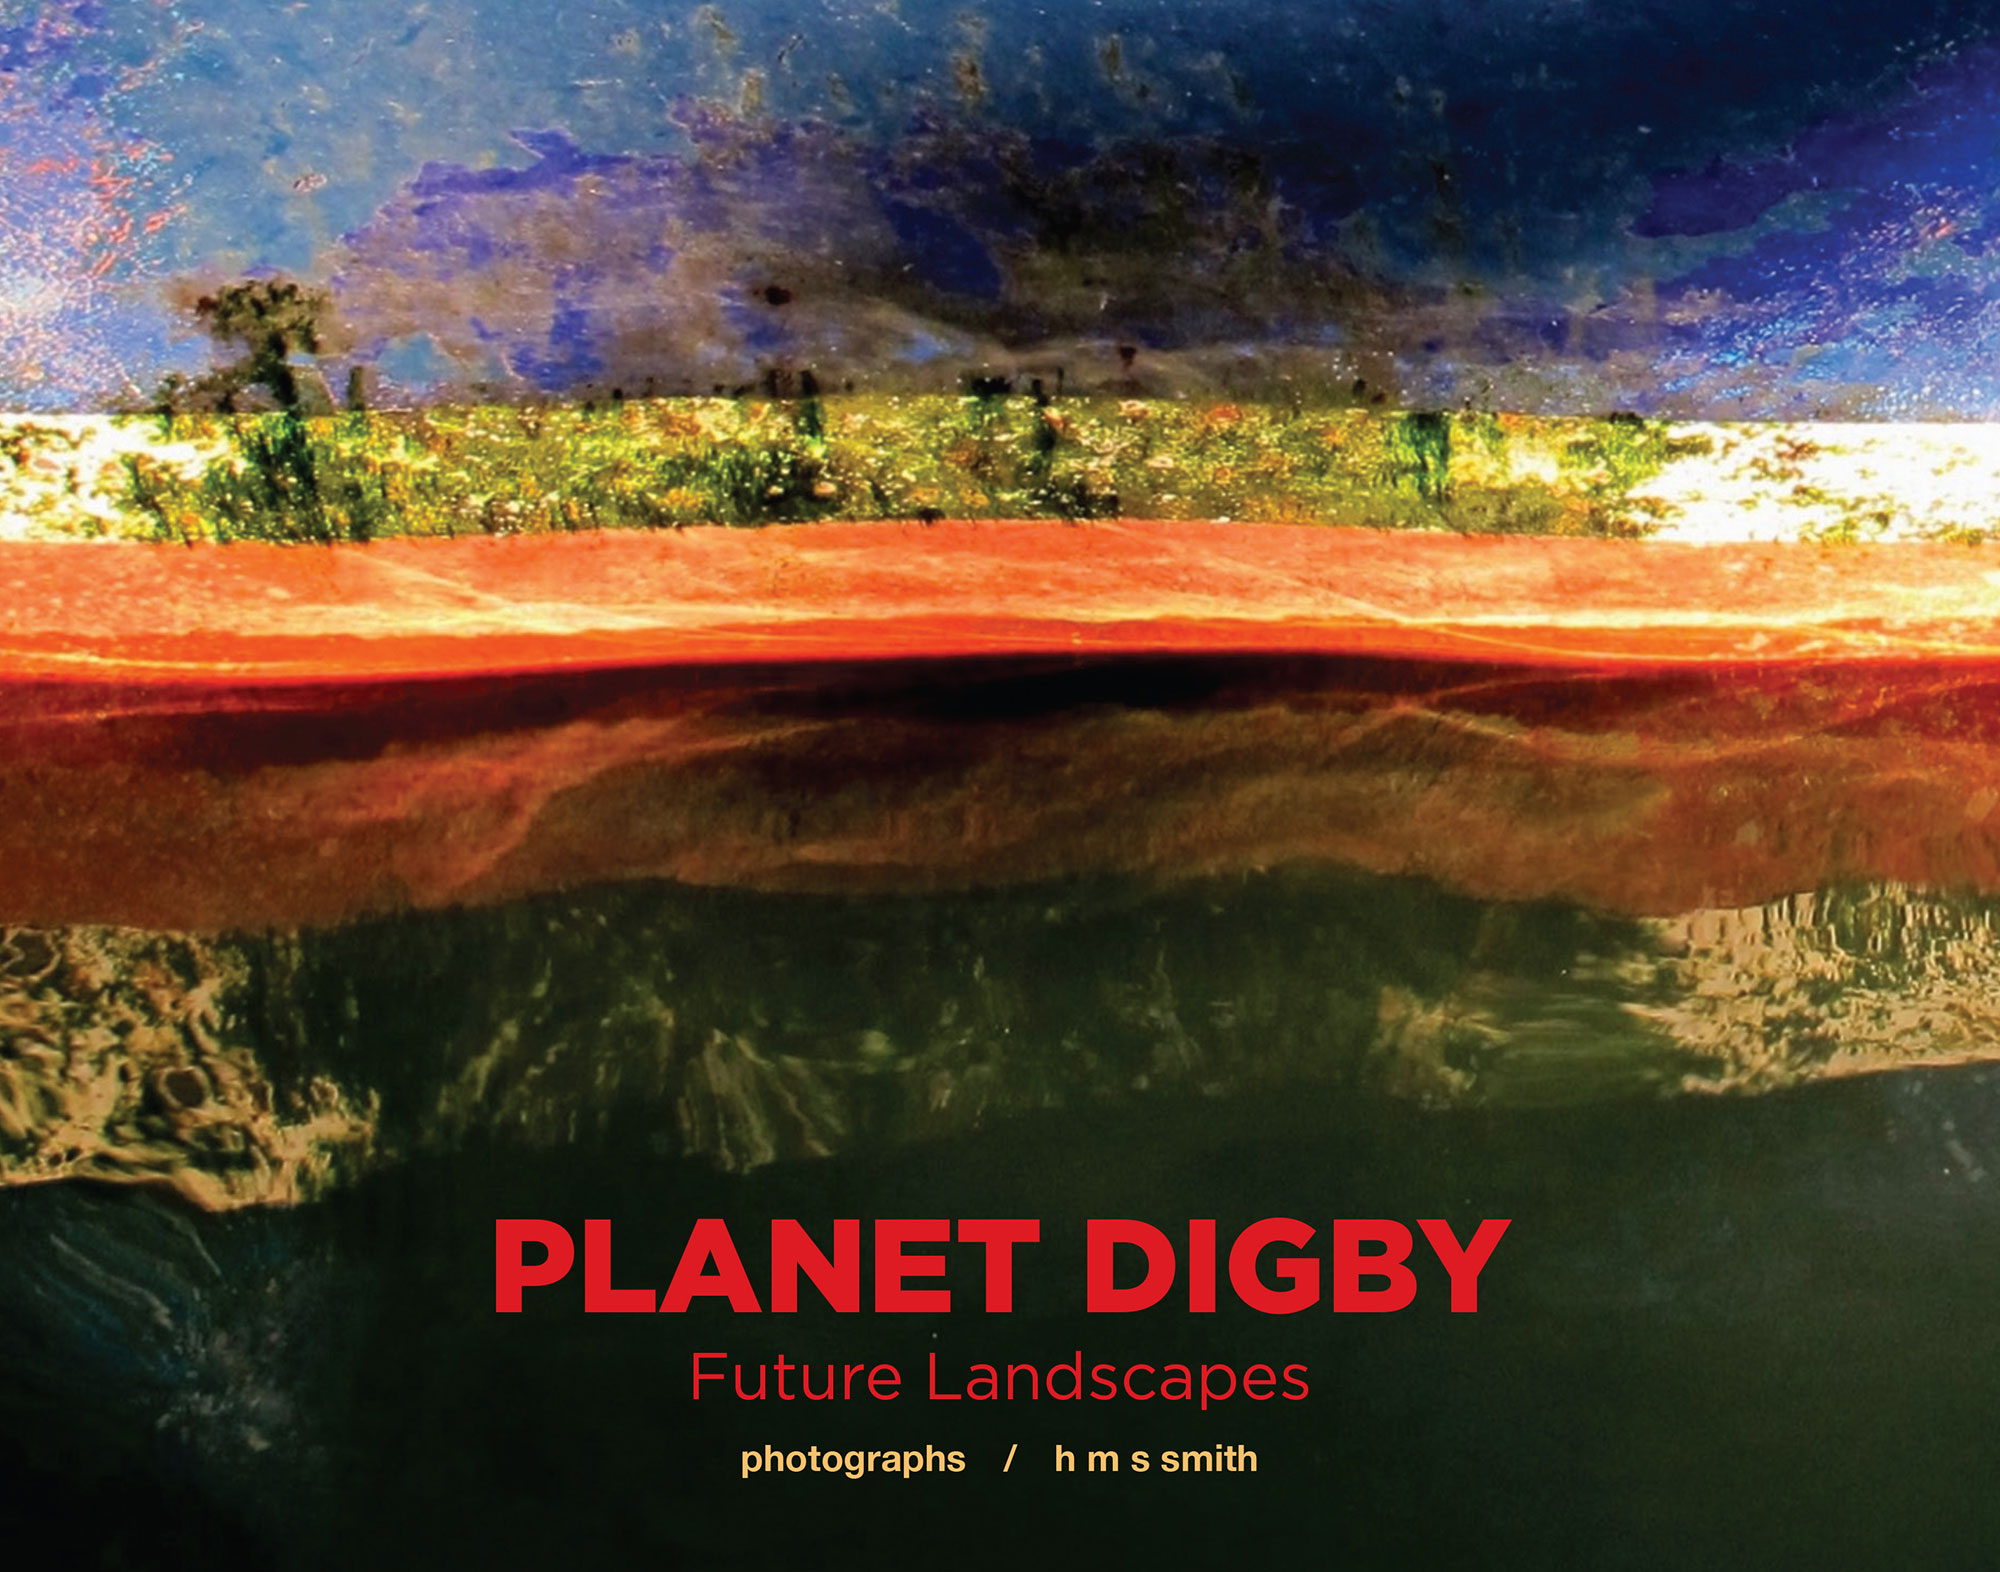 Planet Digby: Future Landscapes